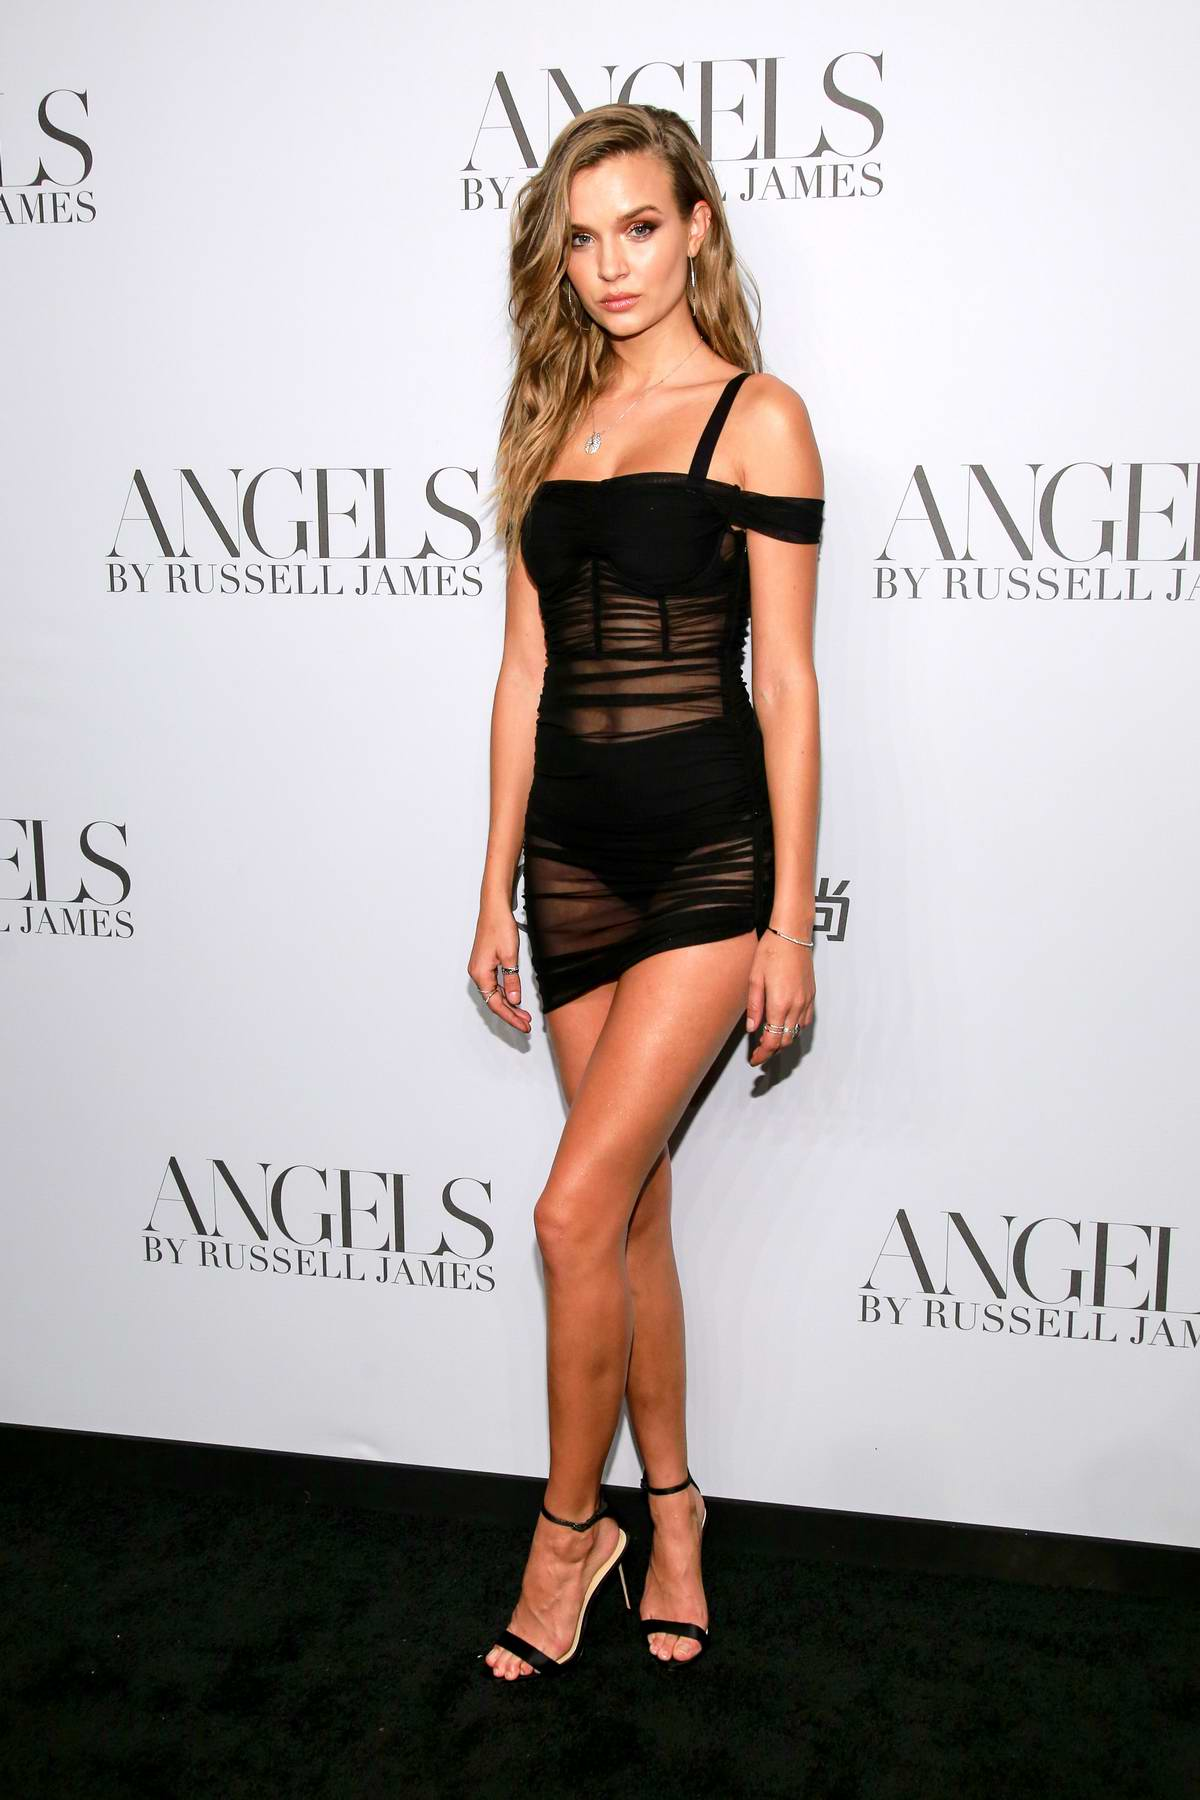 Josephine Skriver attends 'ANGELS' by Russell James Book Launch And Exhibit in New York City